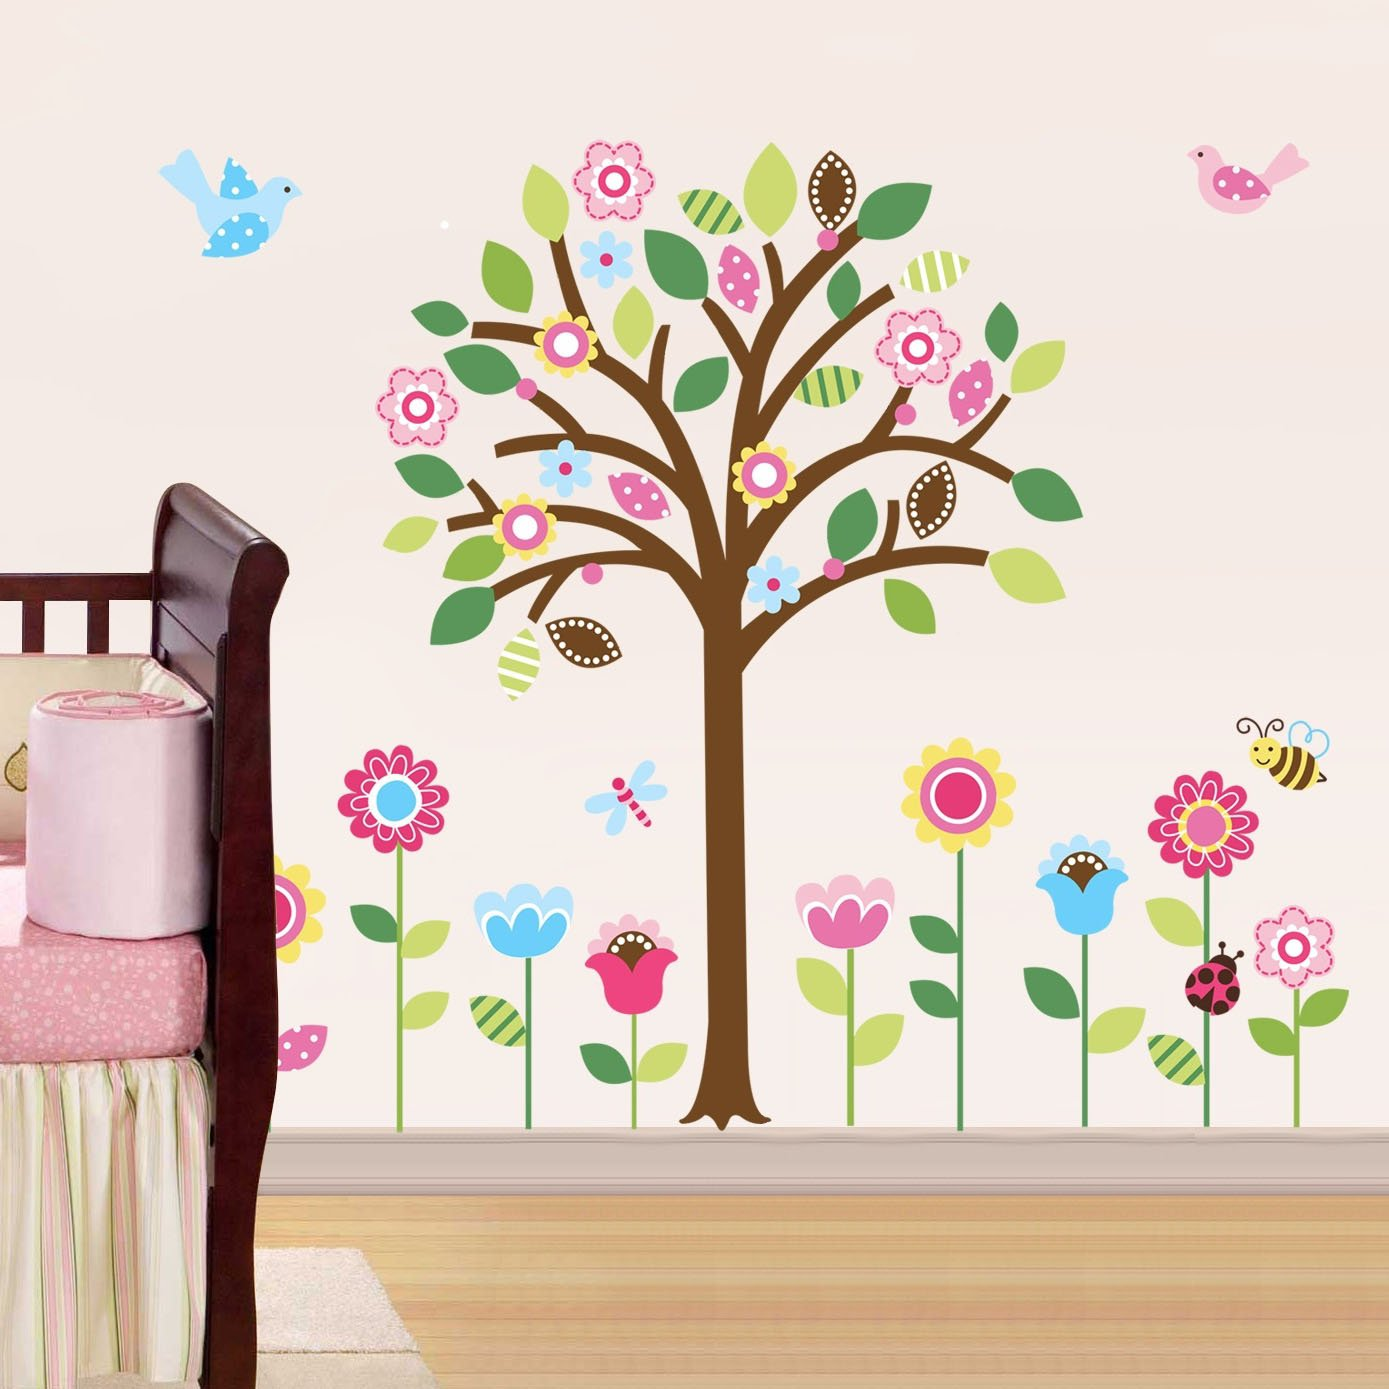 Charming Amazon.com: Pretty Pastel Garden Giant Peel U0026 Stick Wall Art Sticker Decals:  Baby